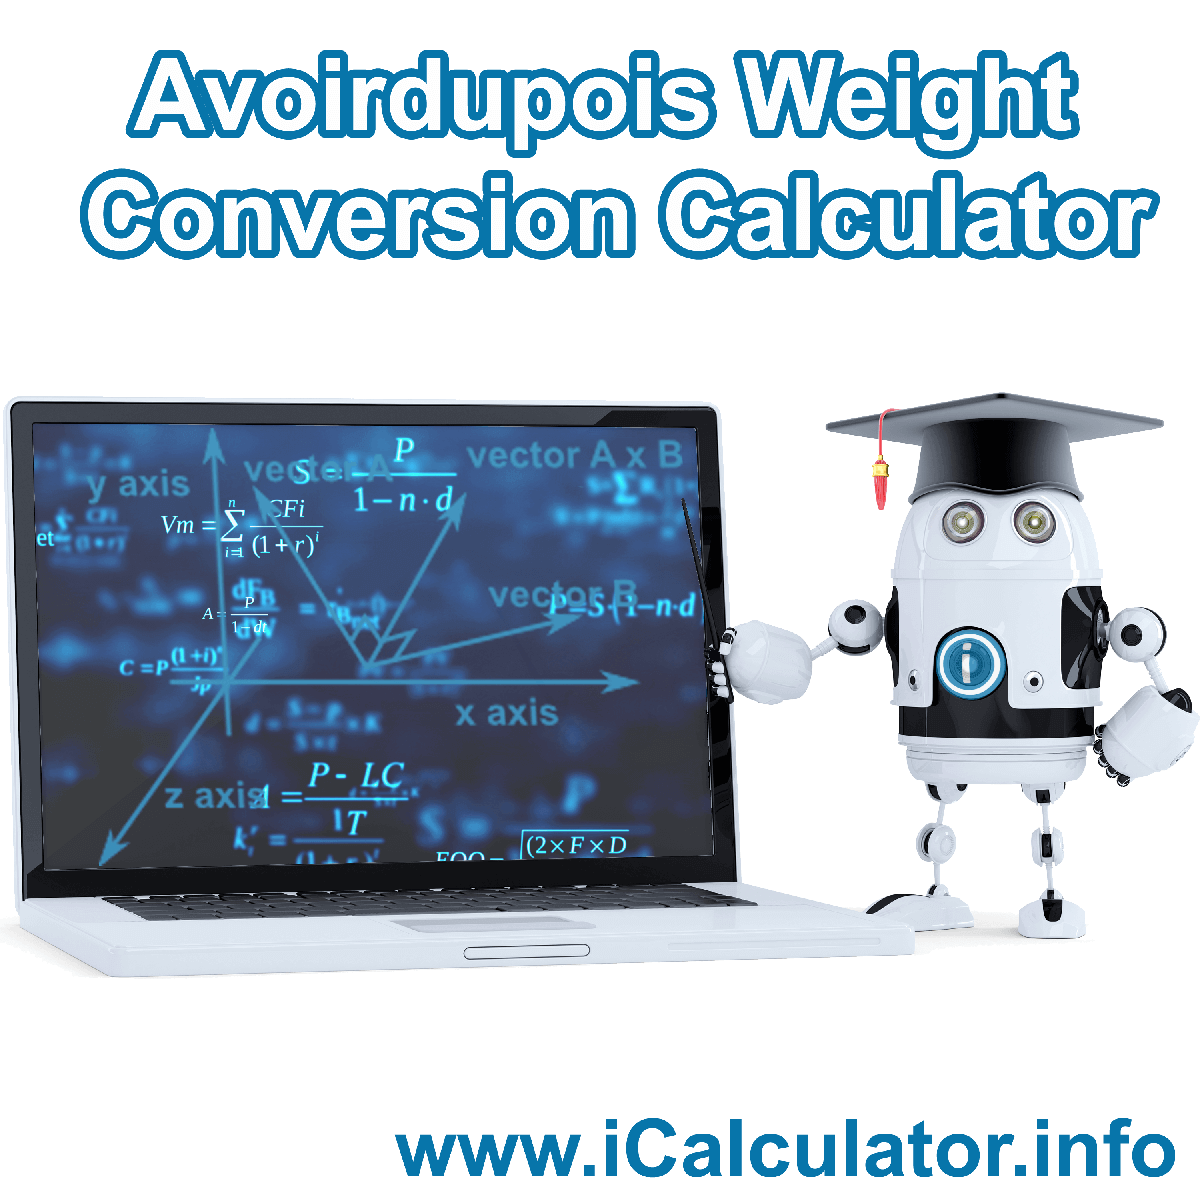 Avoirdupois Weight Conversion Calculator. This image shows Avoirdupois Weight Conversion with associated calculations used by the Avoirdupois Weight Conversion Calculator